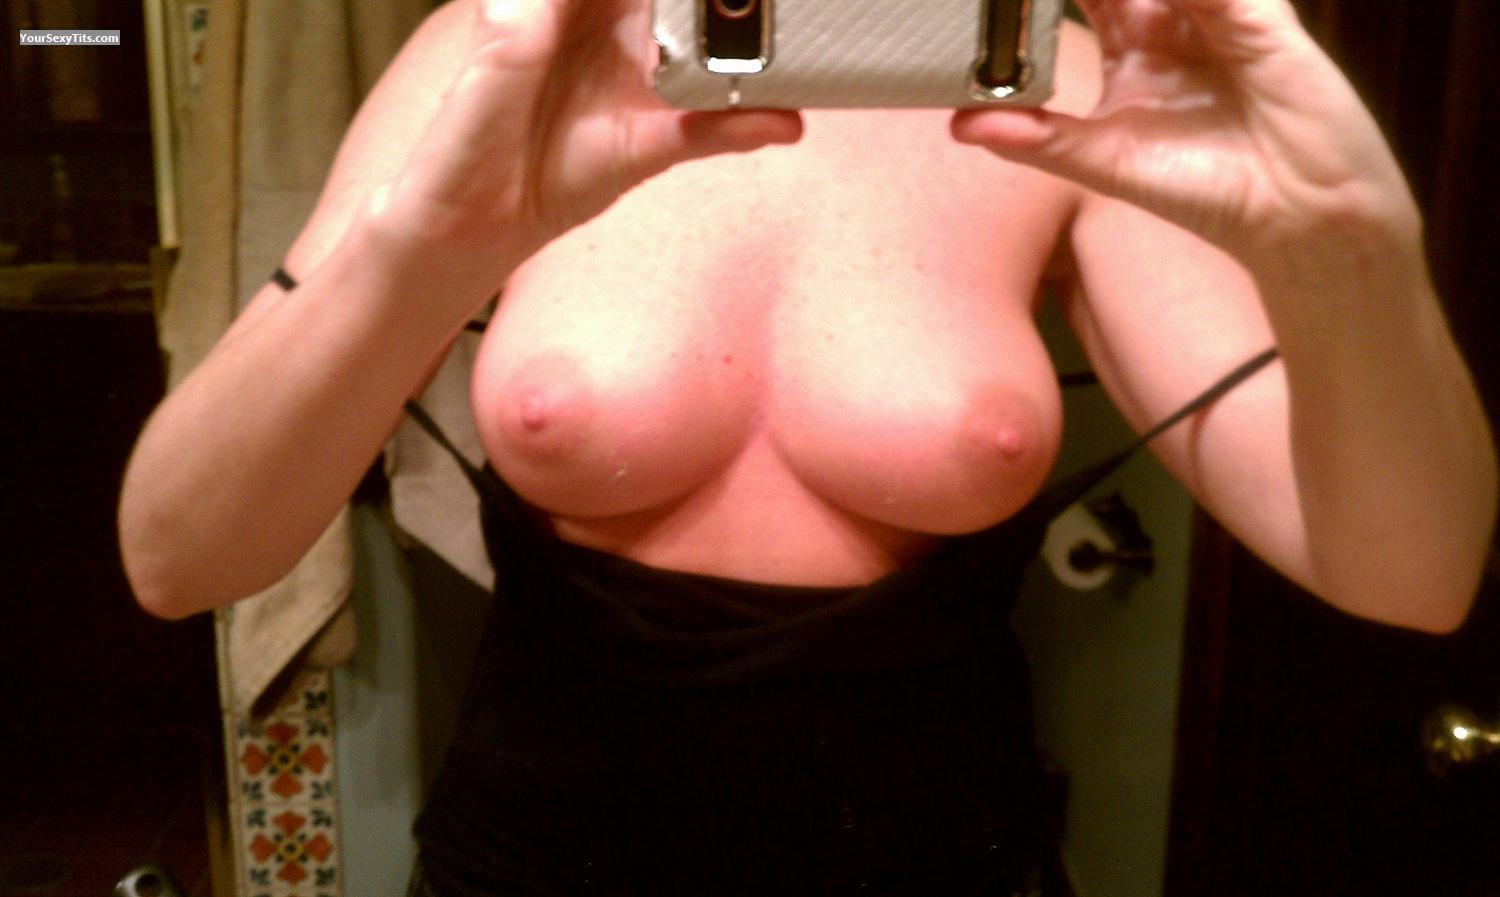 Big Tits Of My Ex-Girlfriend Selfie by Playa Ex